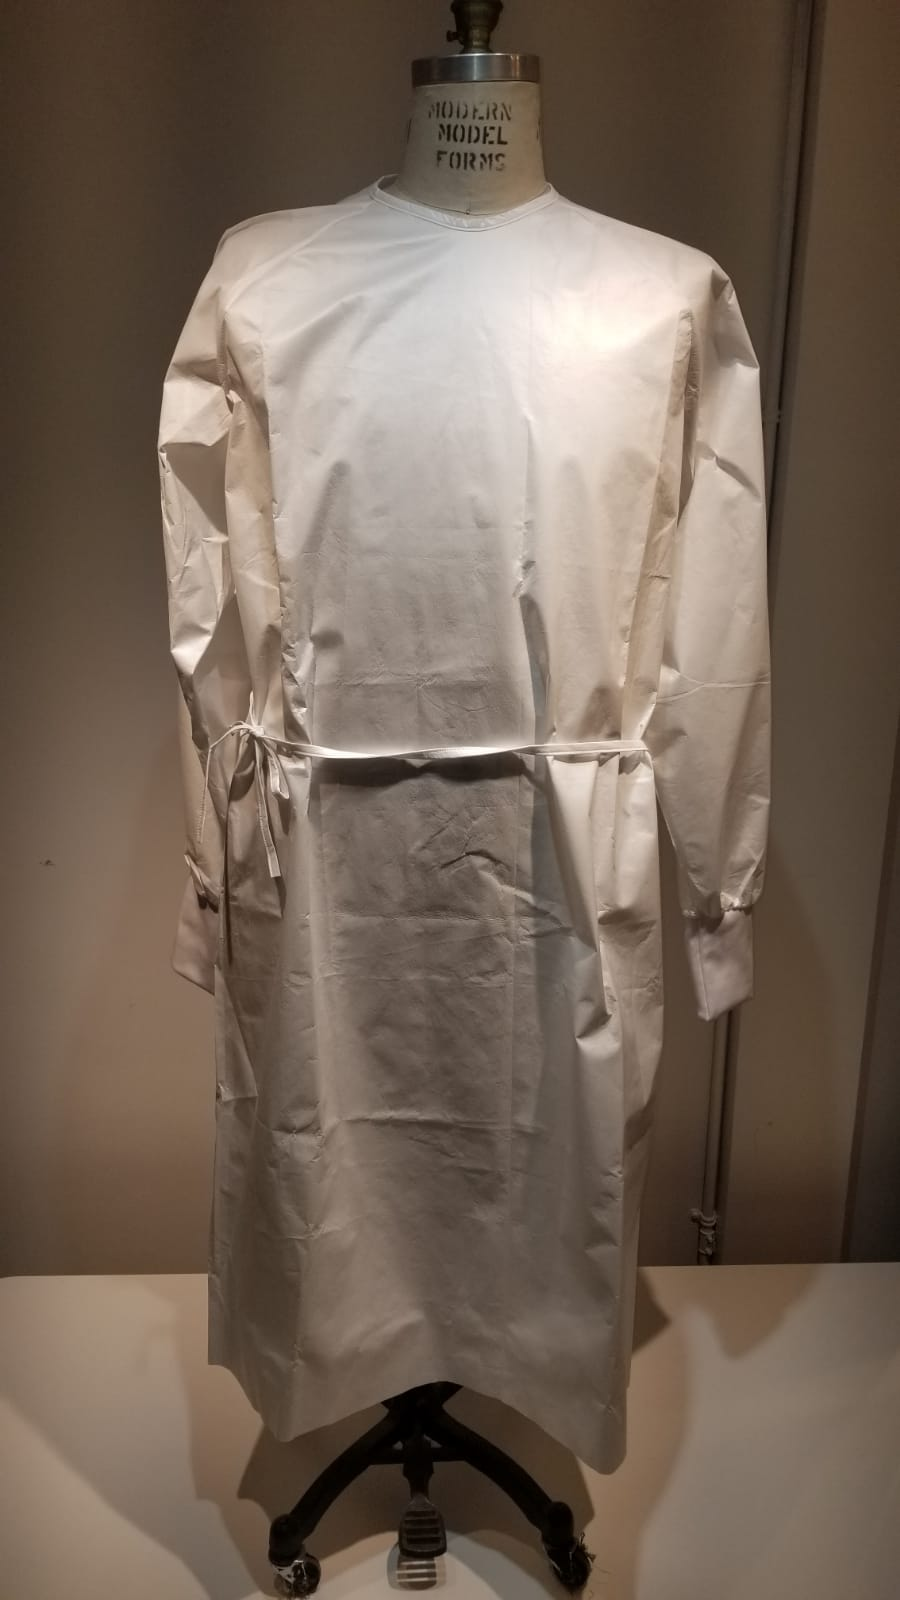 SURGICAL GOWN - LEVEL 1